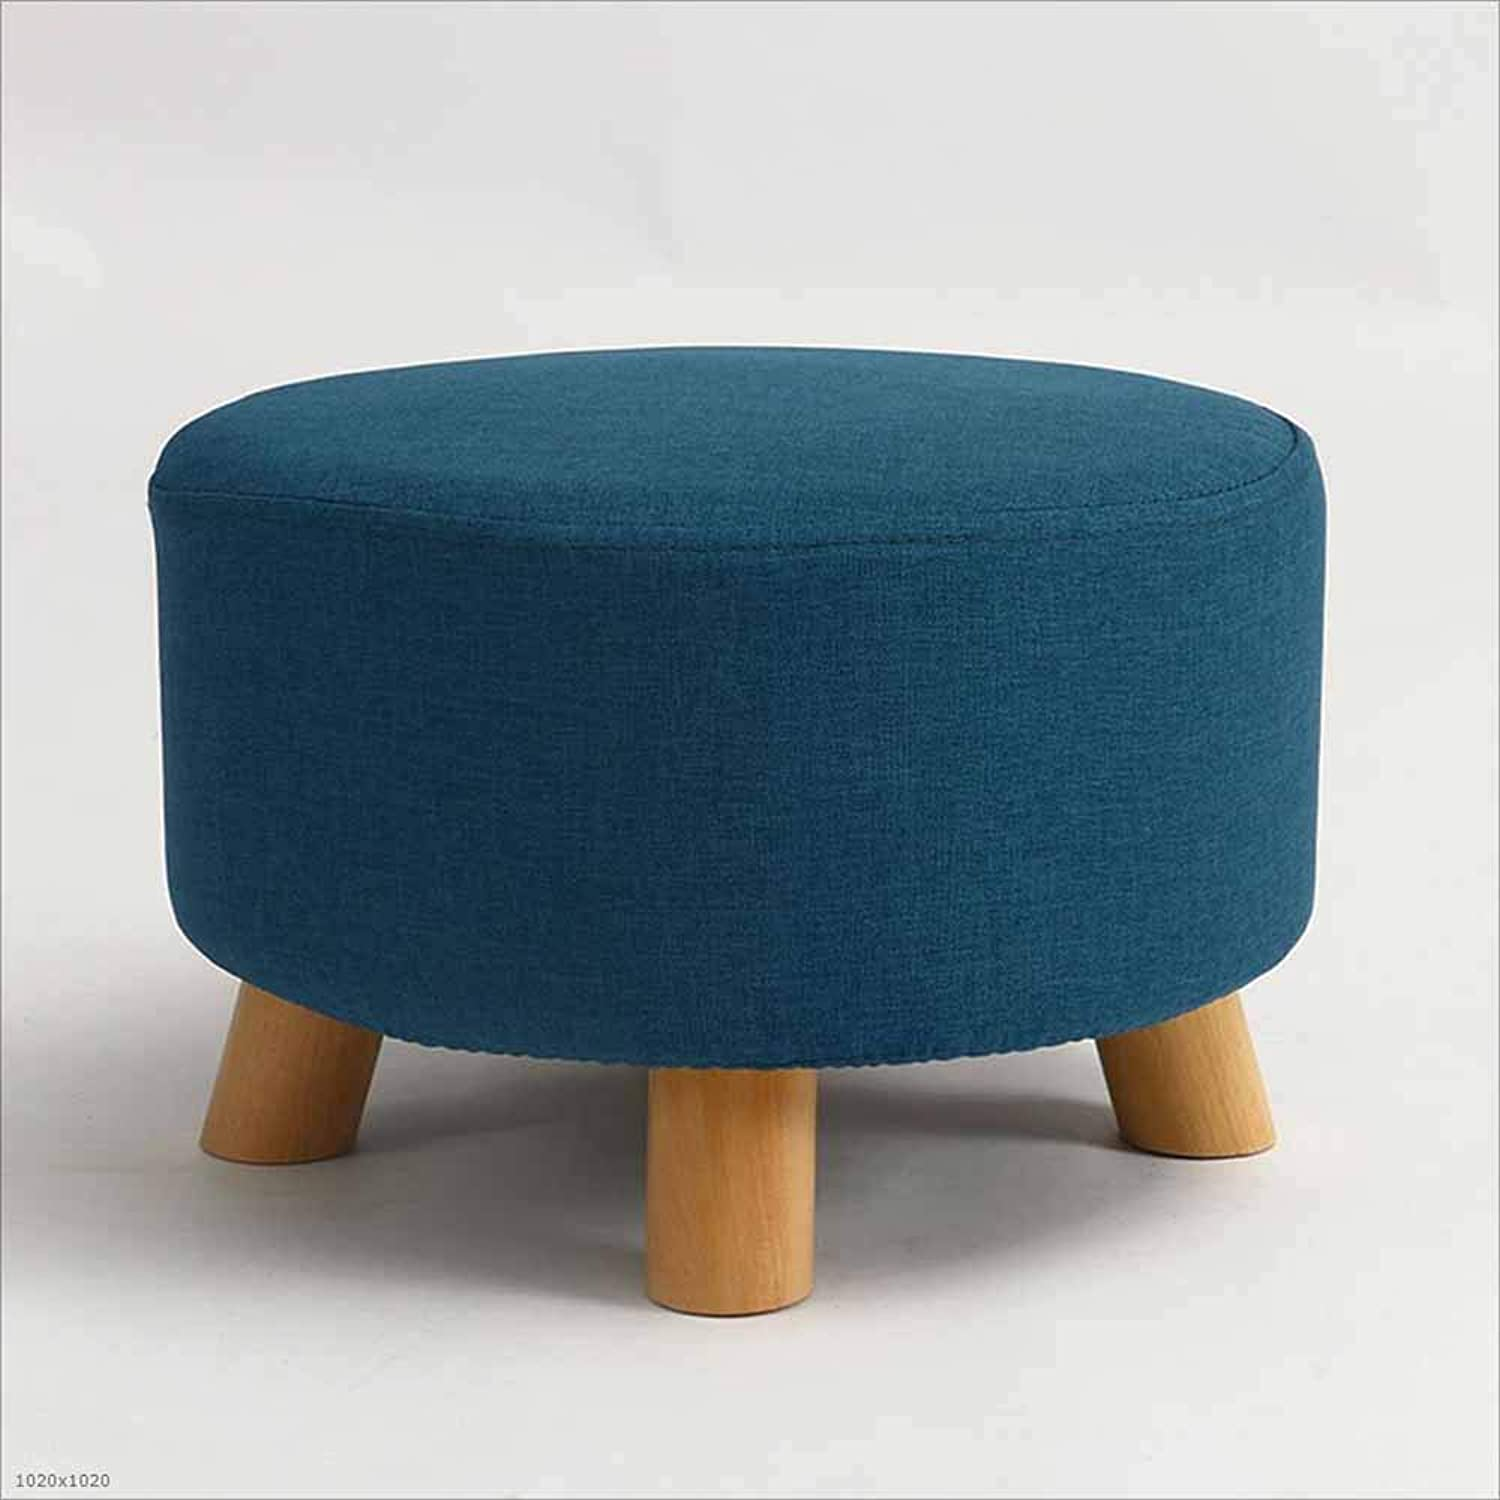 Sofa Stool Solid Wood Stool Fabric Washable Coffee Table Stool Small Stool Suitable for Living Room Bedroom, 2